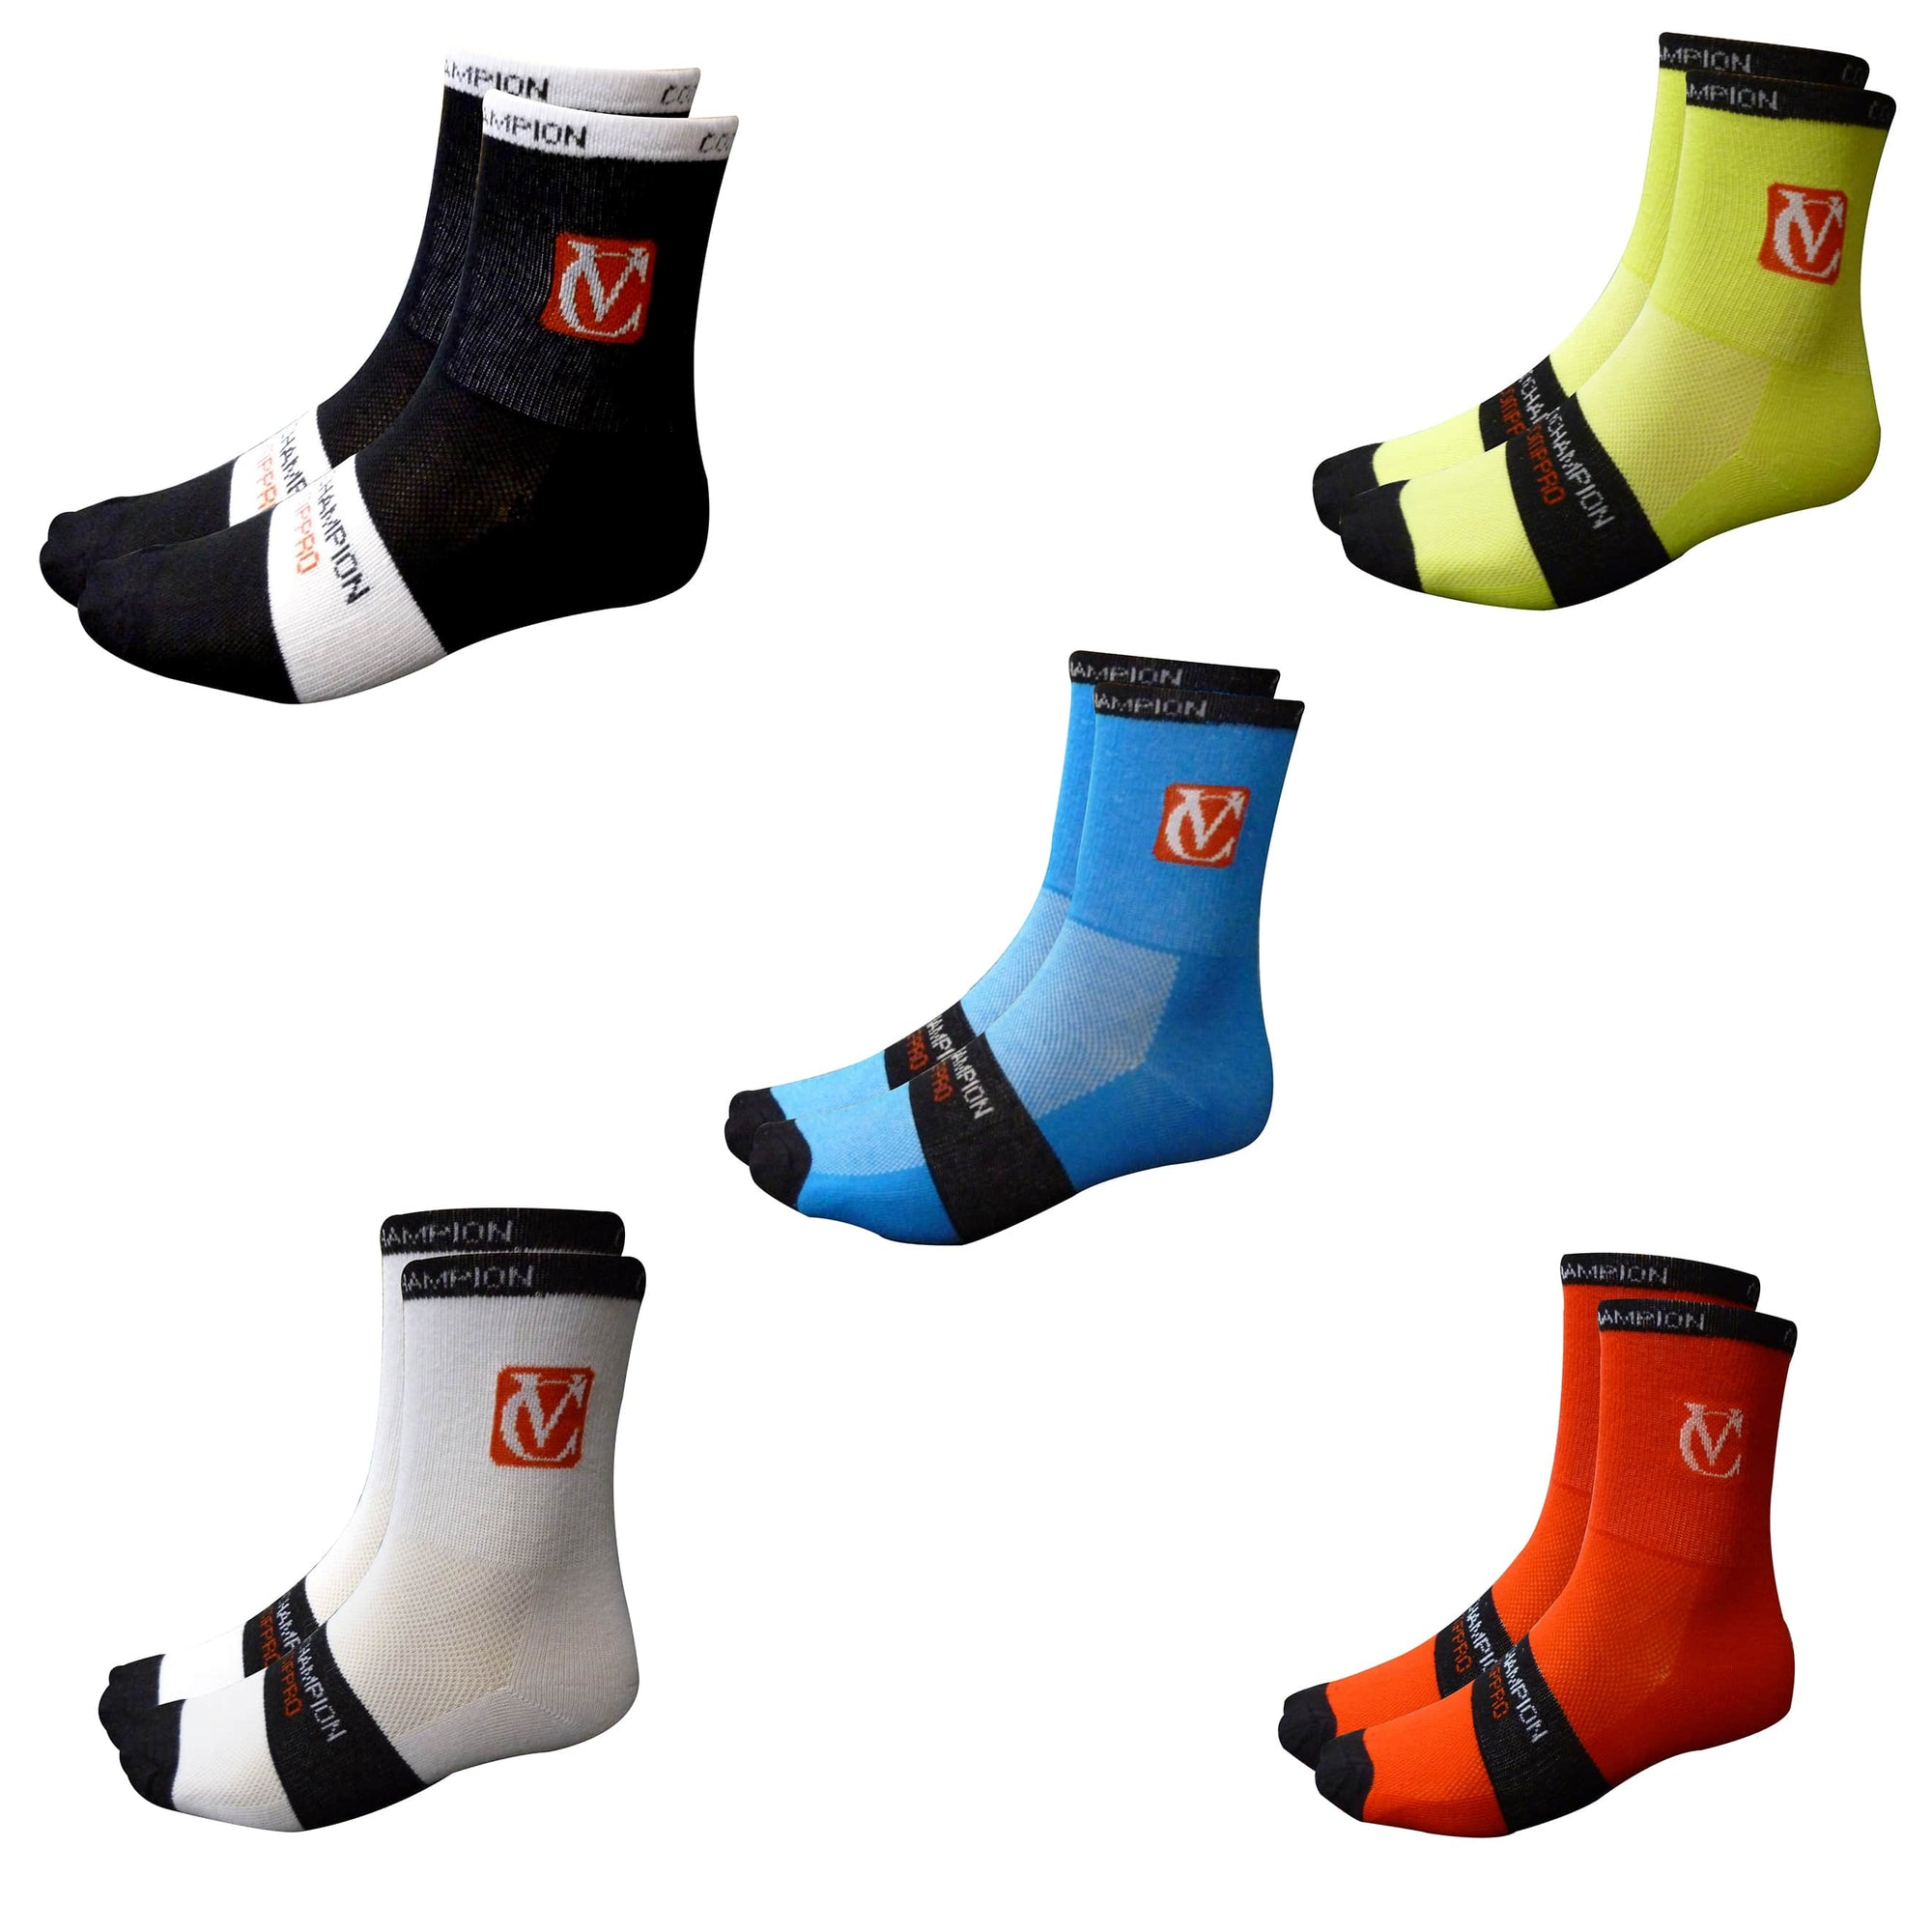 VC Comp Pro Socks - Pack of 3 Pairs - Available in 5 colour variations